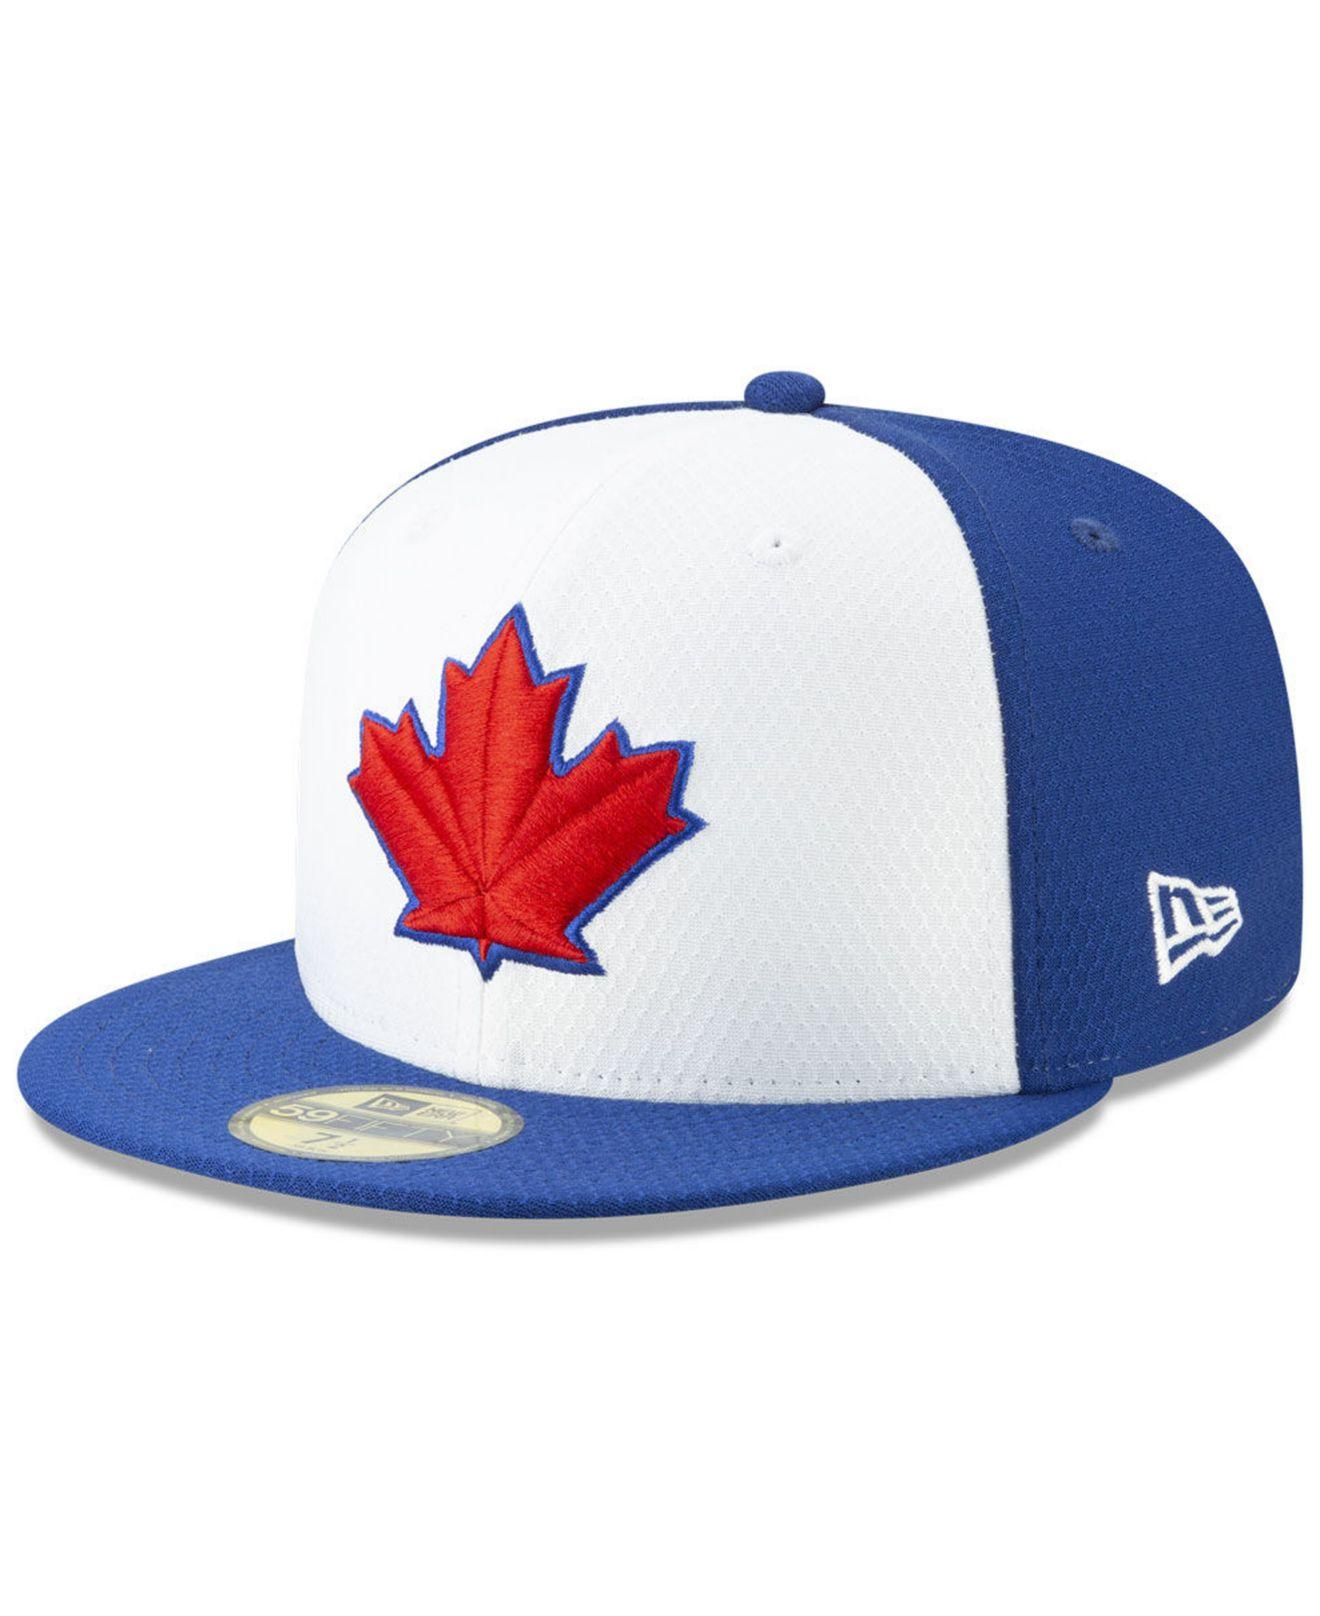 1ecaa2654a7 Lyst - KTZ Toronto Blue Jays Batting Practice 59fifty-fitted Cap in ...